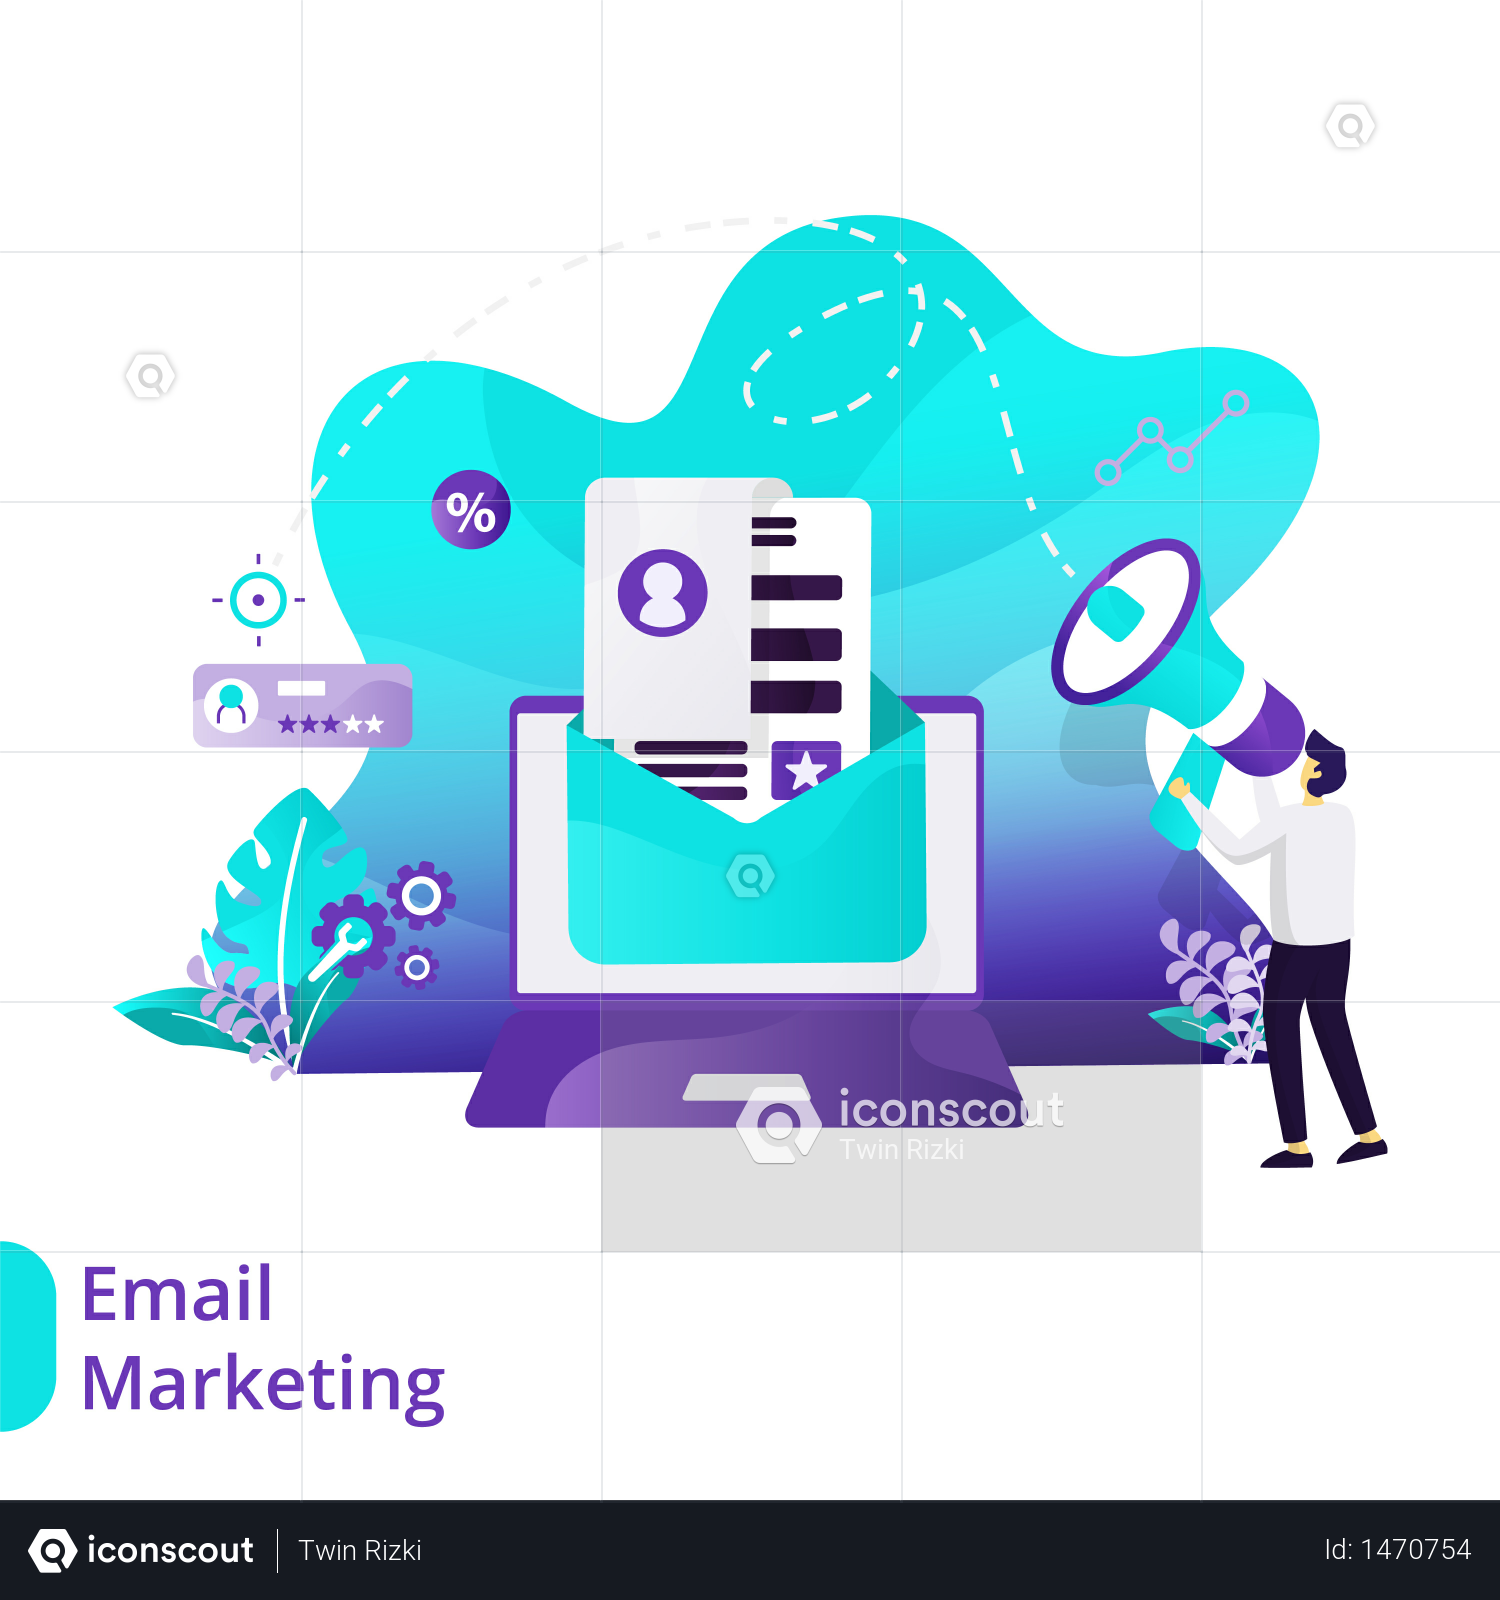 Premium Landing Page Of Email Marketing Illustration Download In Png Vector Format In 2021 Email Marketing Landing Page Marketing